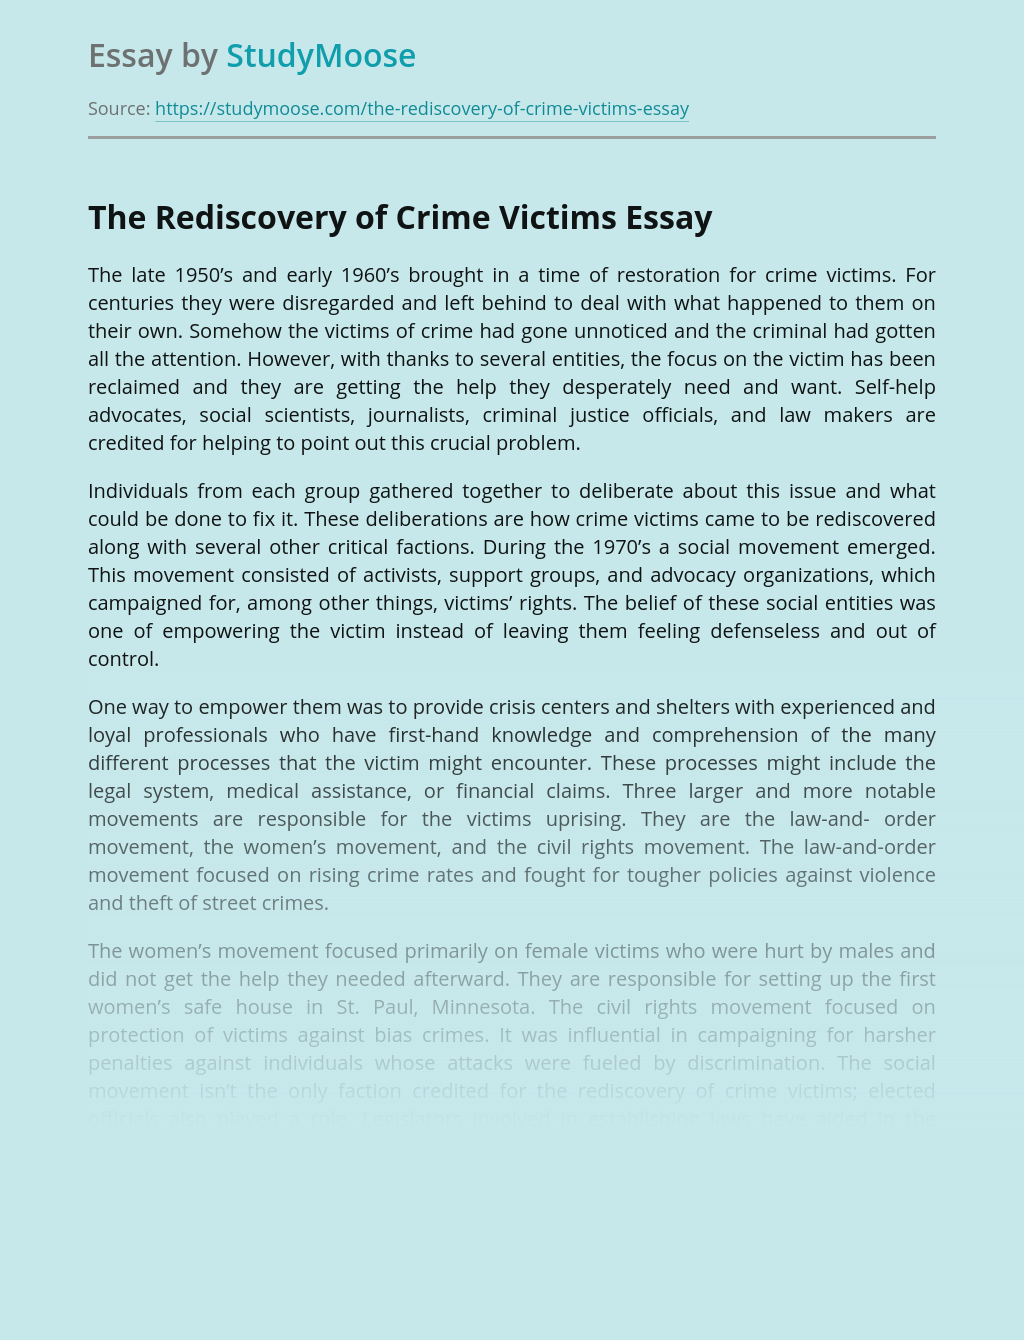 The Rediscovery of Crime Victims